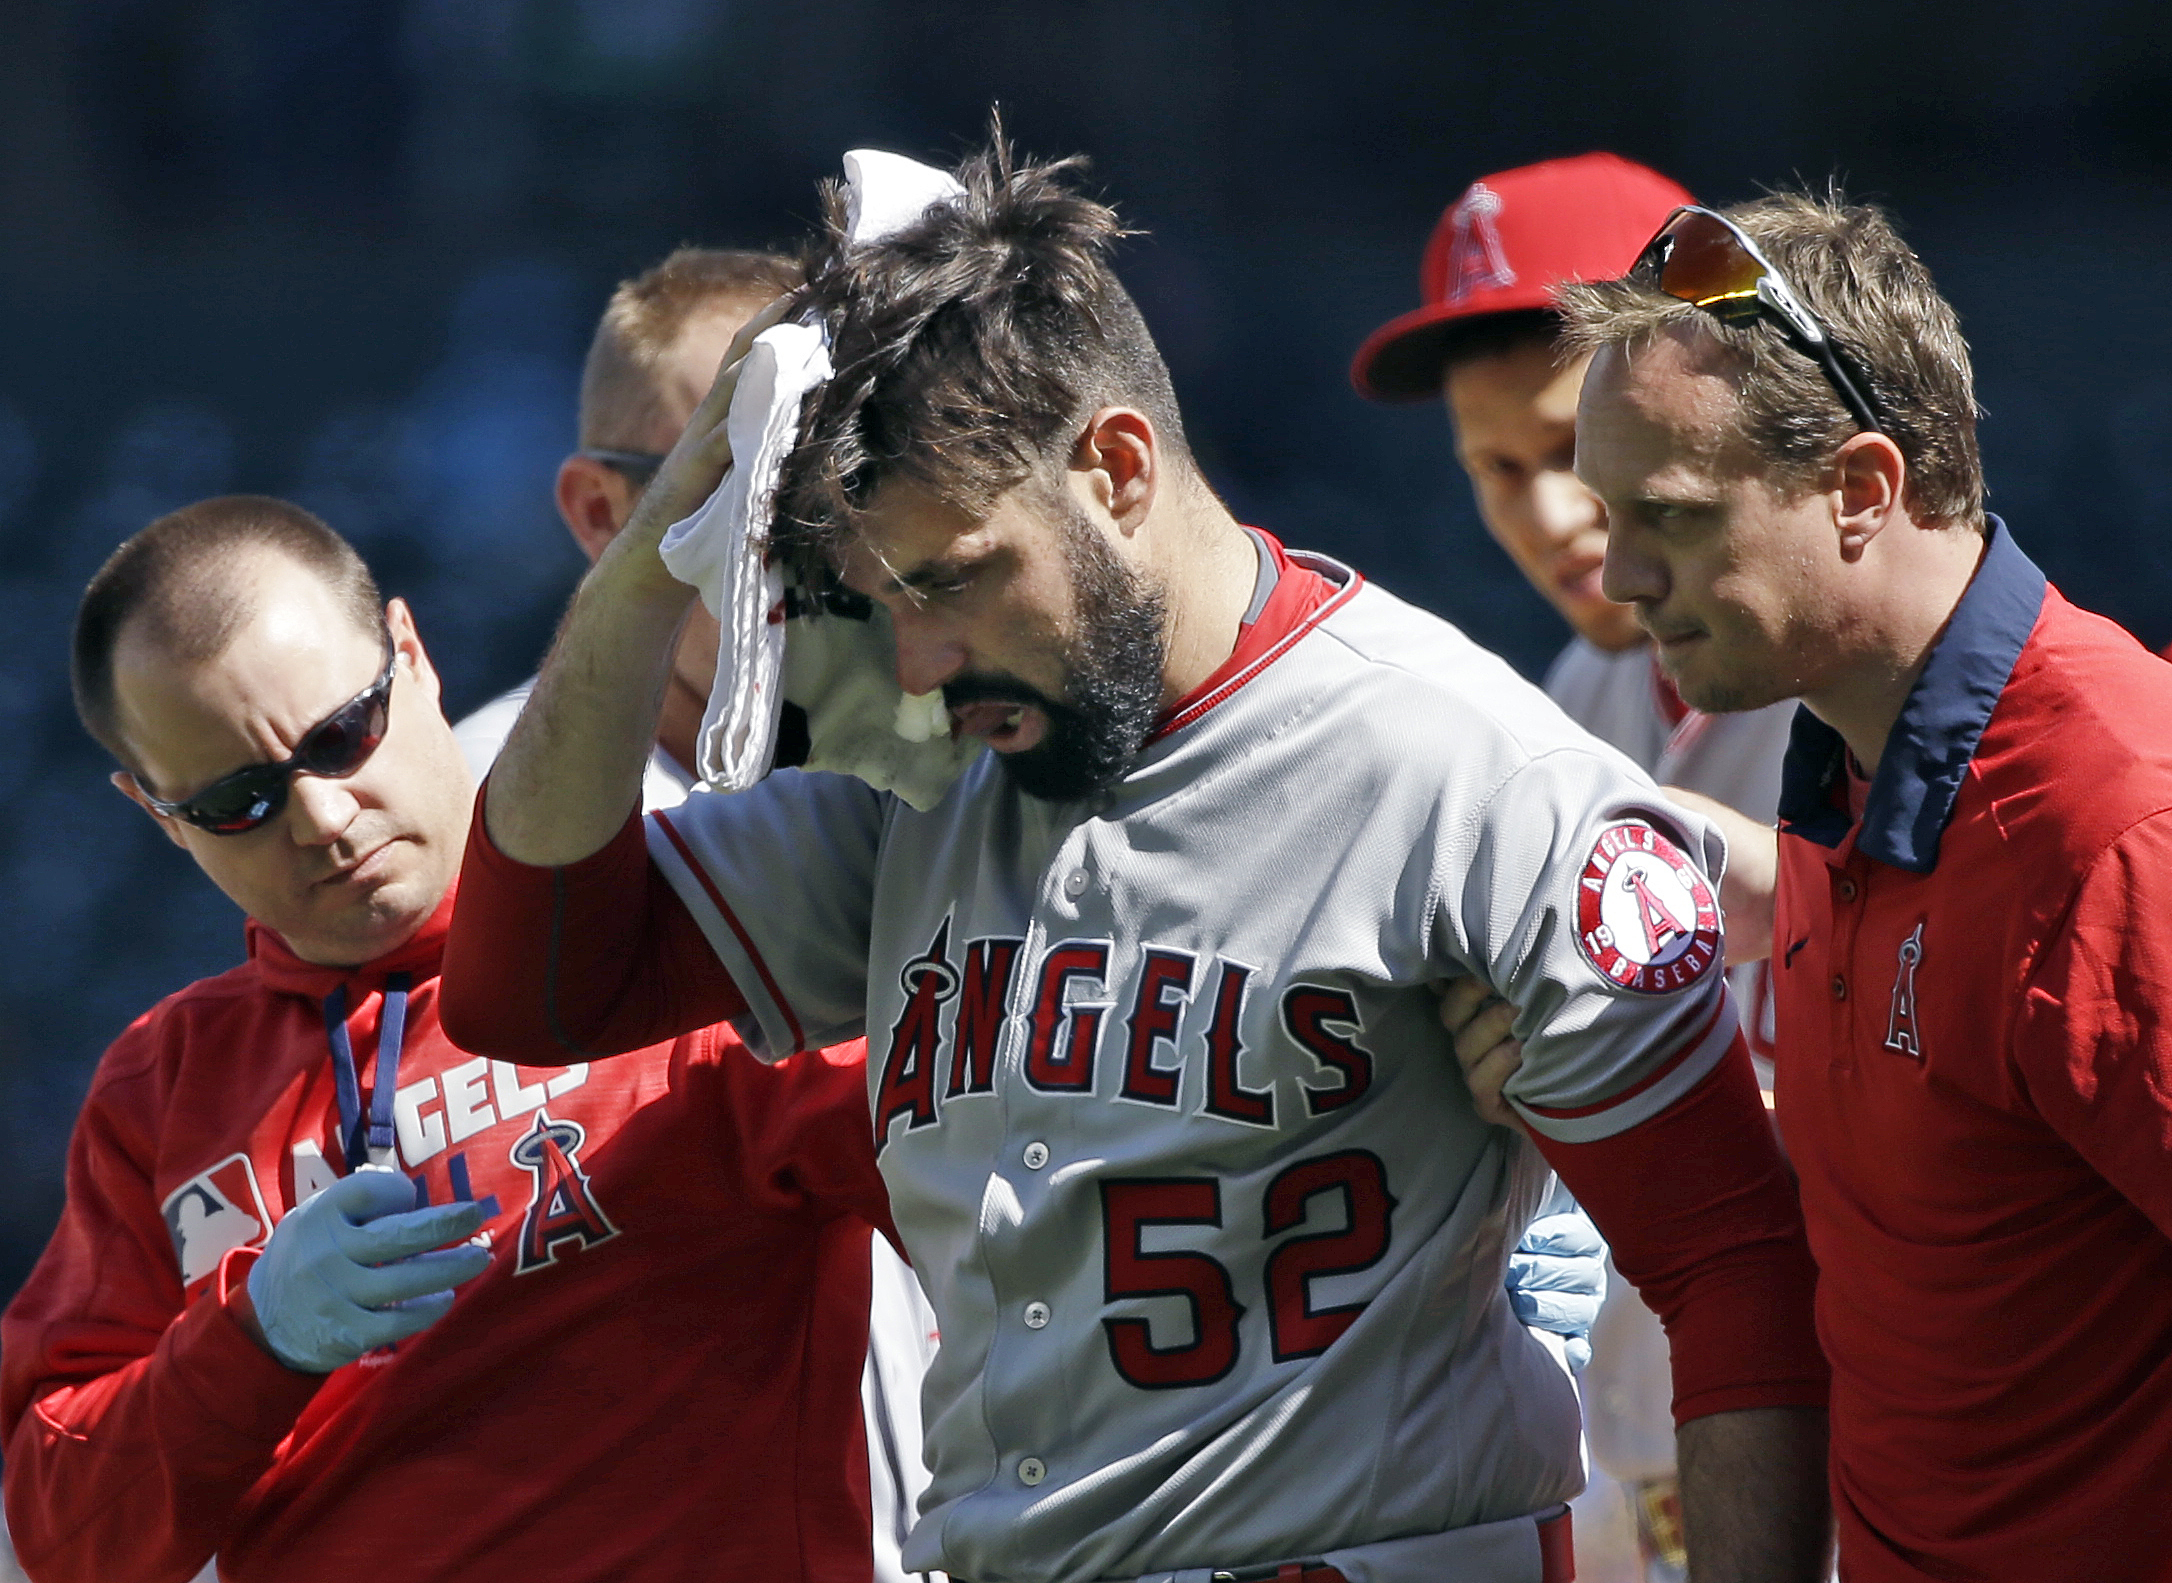 Los Angeles Angels starting pitcher Matt Shoemaker is assisted off the field after being hit by a line drive from Seattle Mariners' Kyle Seager in the second inning of a baseball game, Sunday, Sept. 4, 2016, in Seattle. (AP Photo/Elaine Thompson)